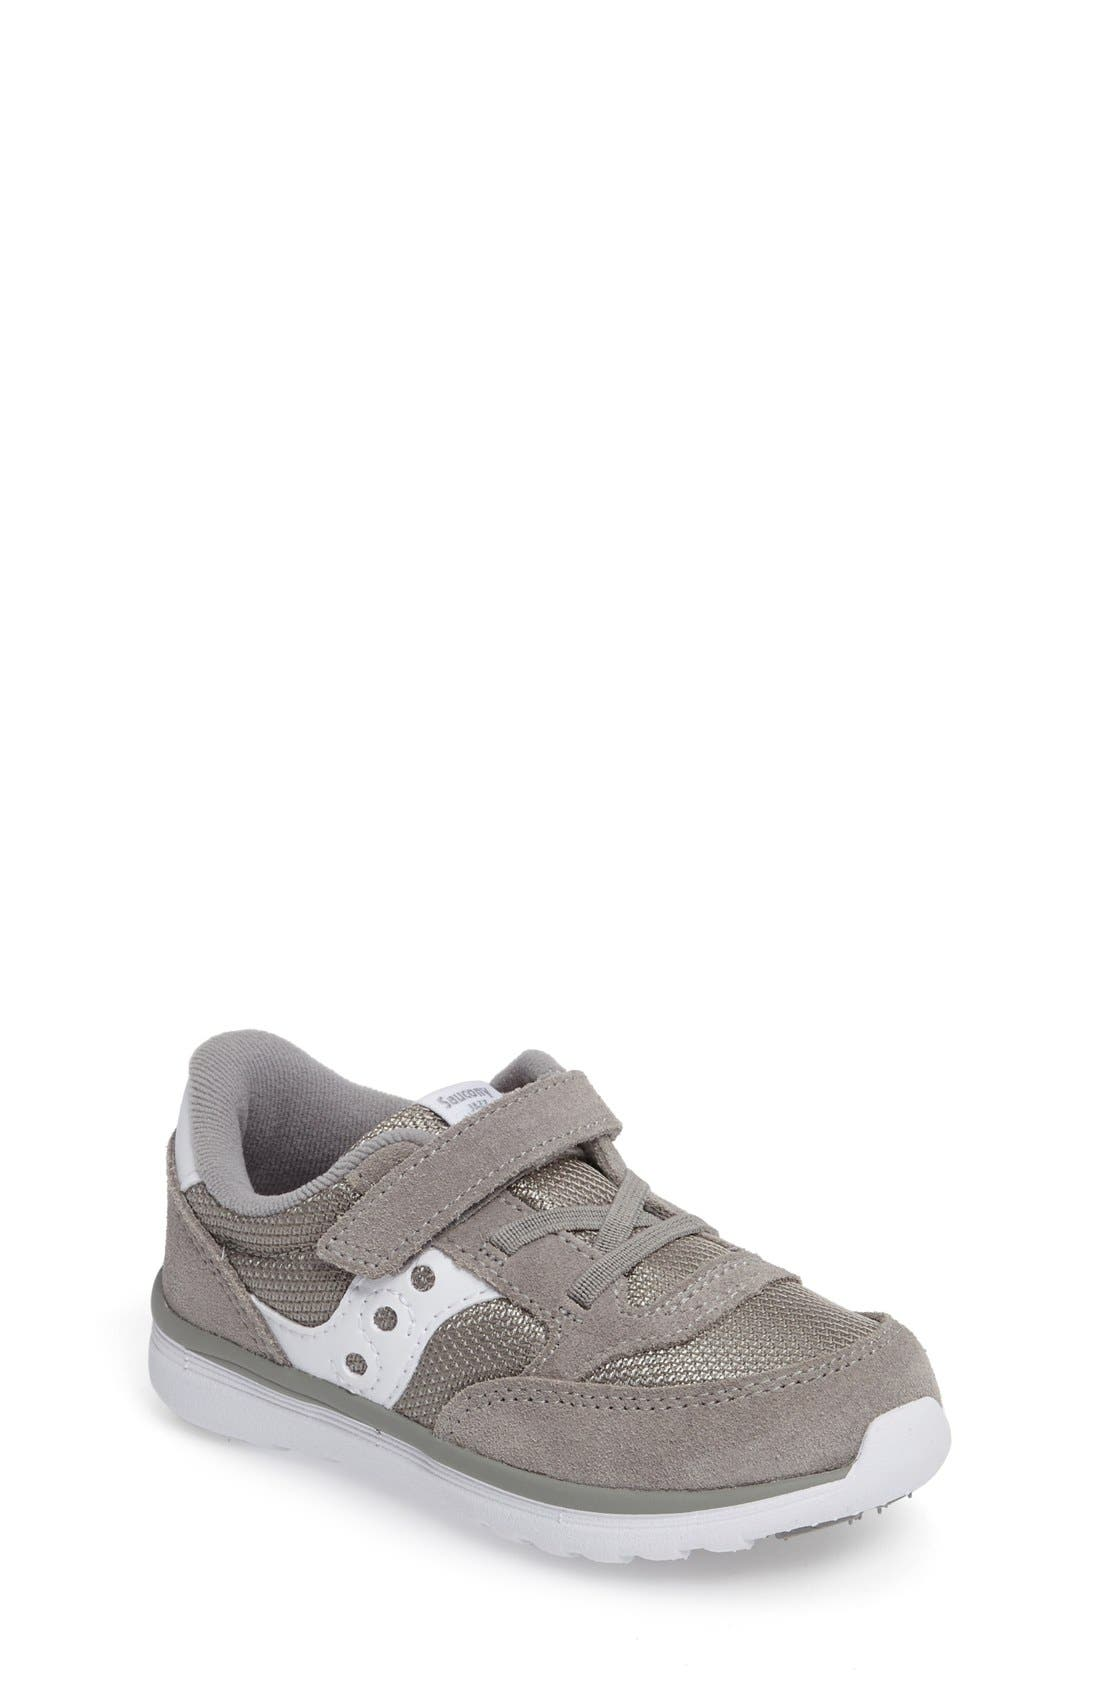 Jazz Lite Sneaker,                             Main thumbnail 1, color,                             GREY/ WHITE